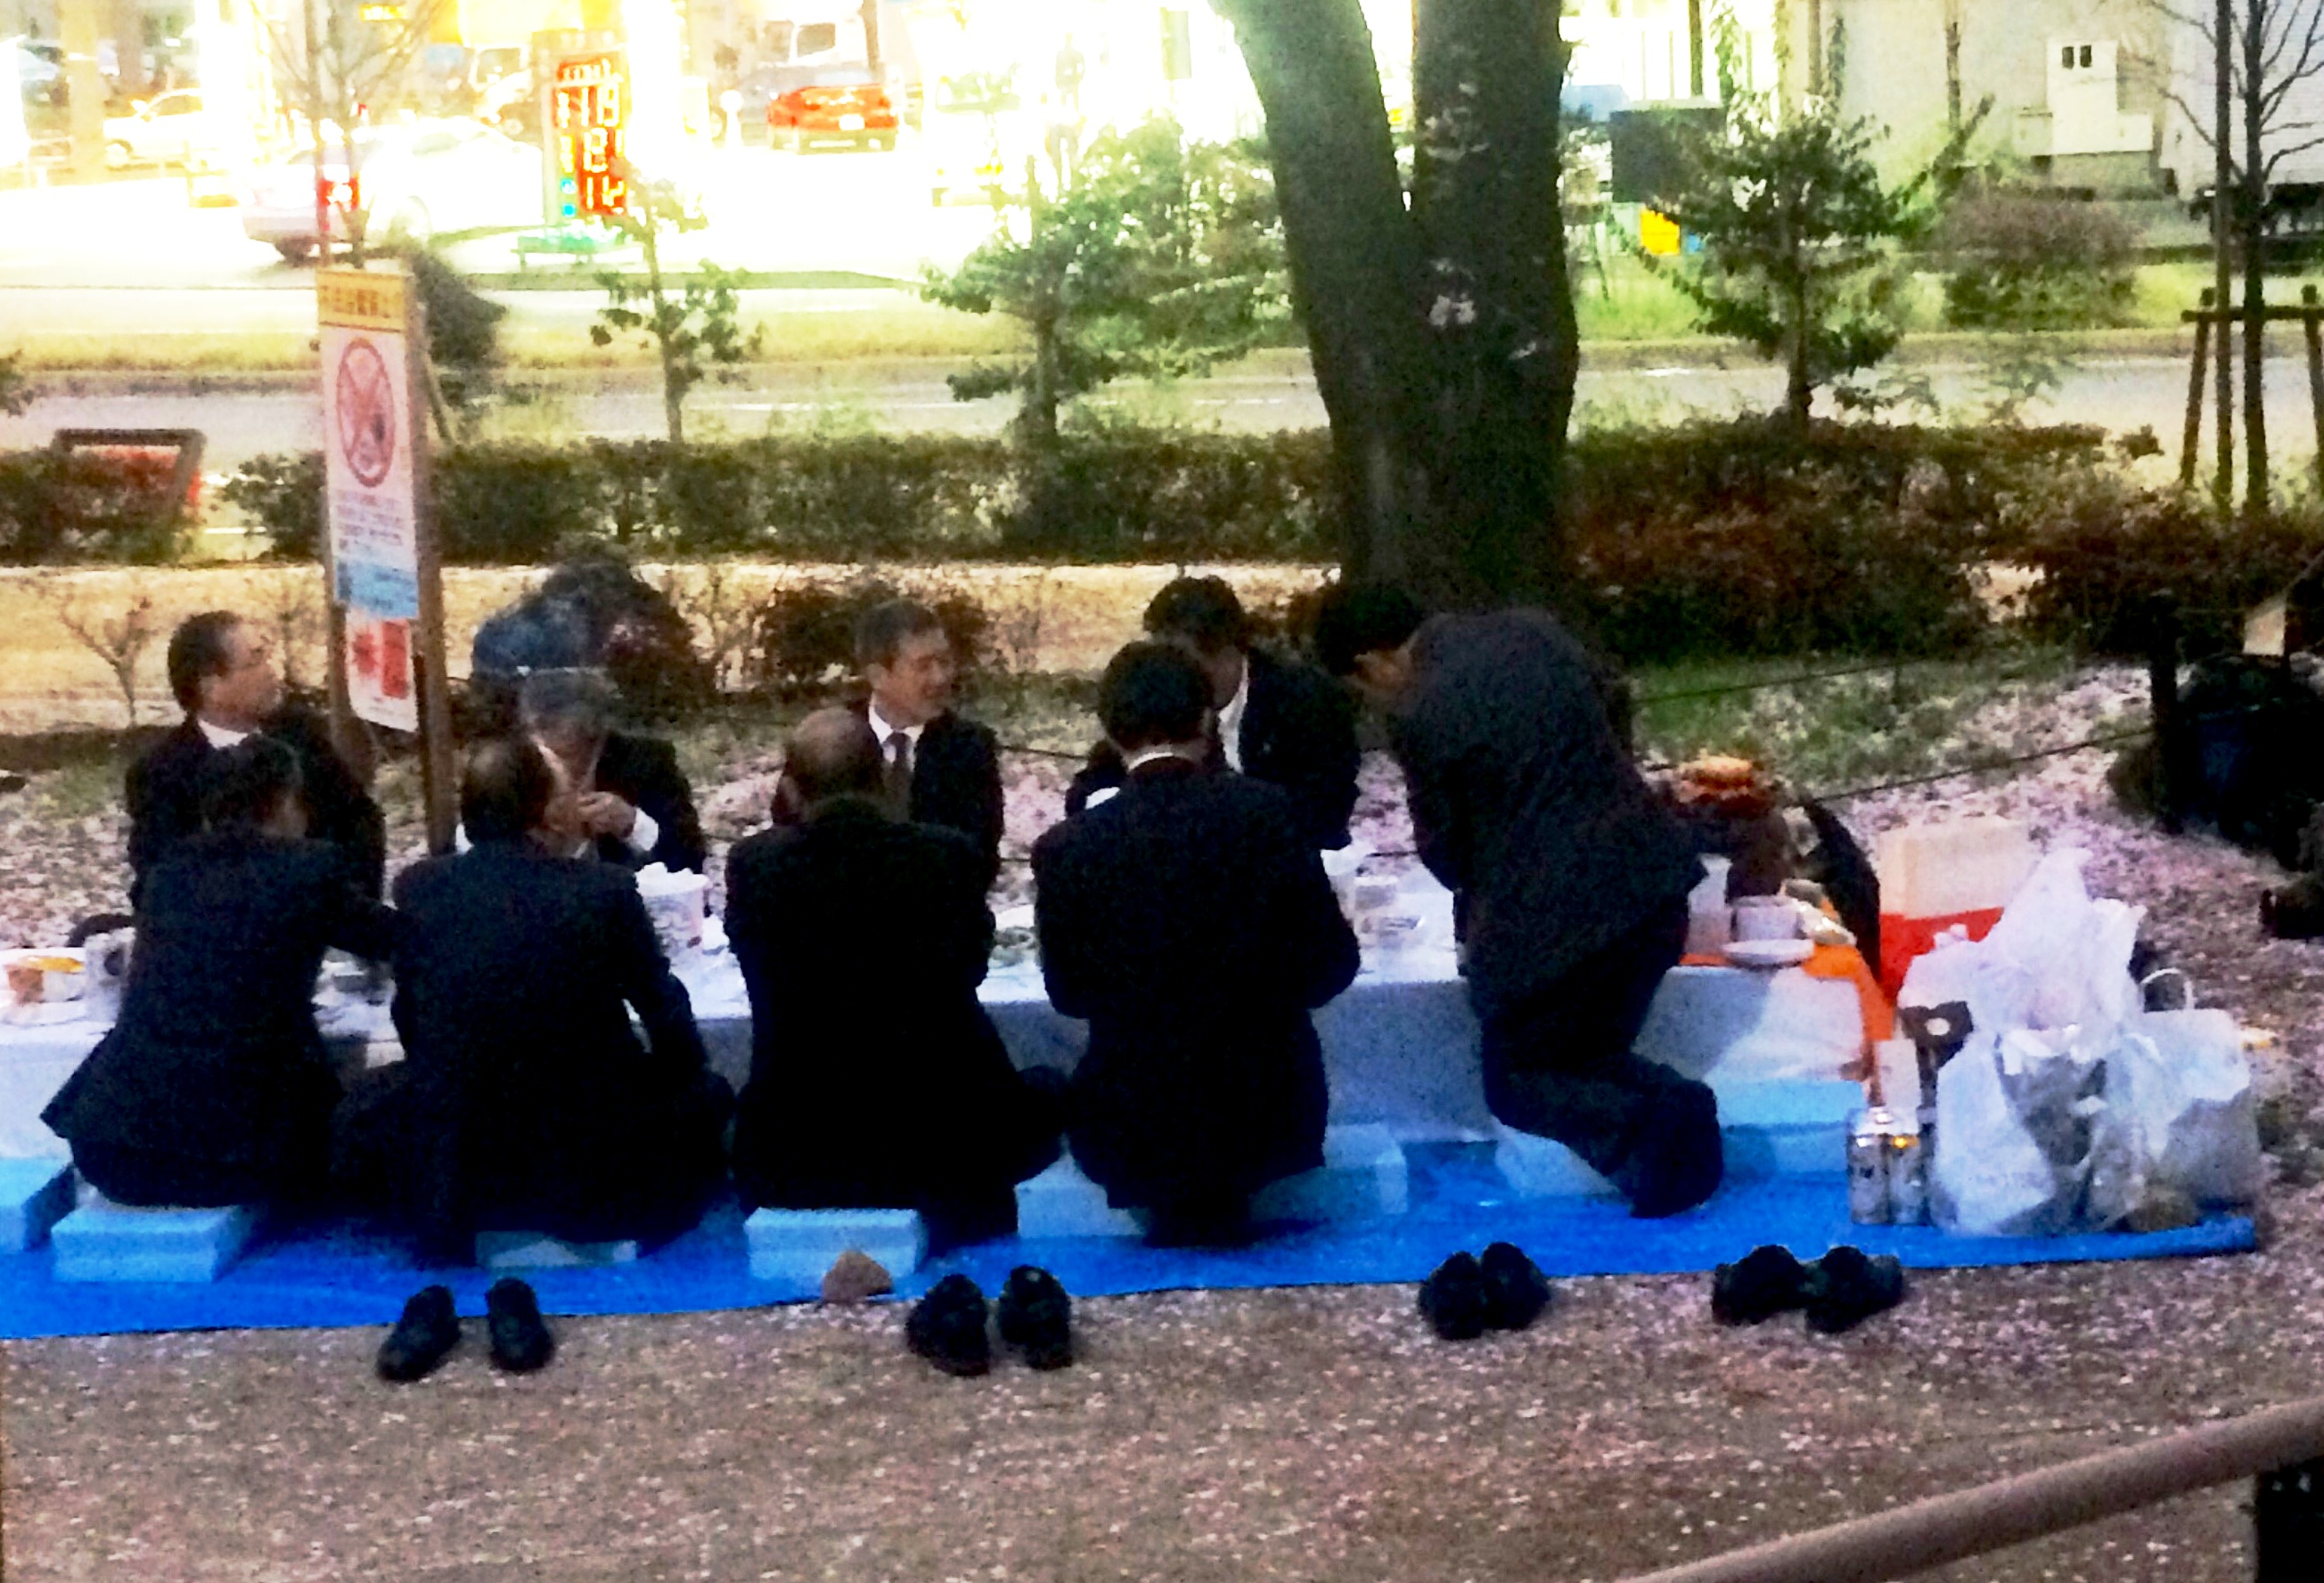 Men in suits on picnic by Kirsten Bukager